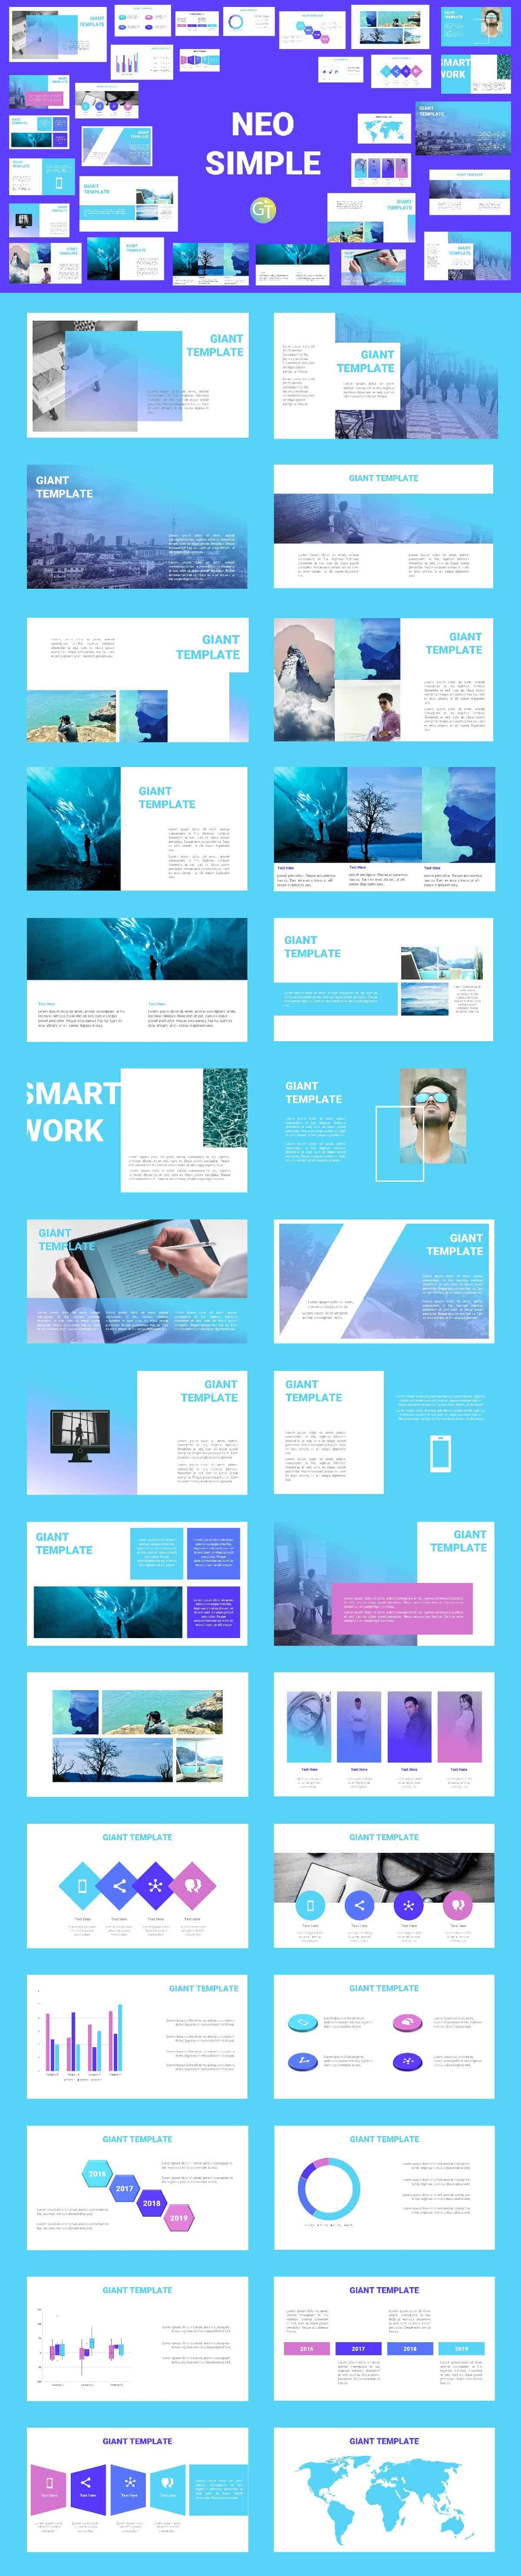 Template PPT Simple Helps to Create Presentation Slides Faster and Easier